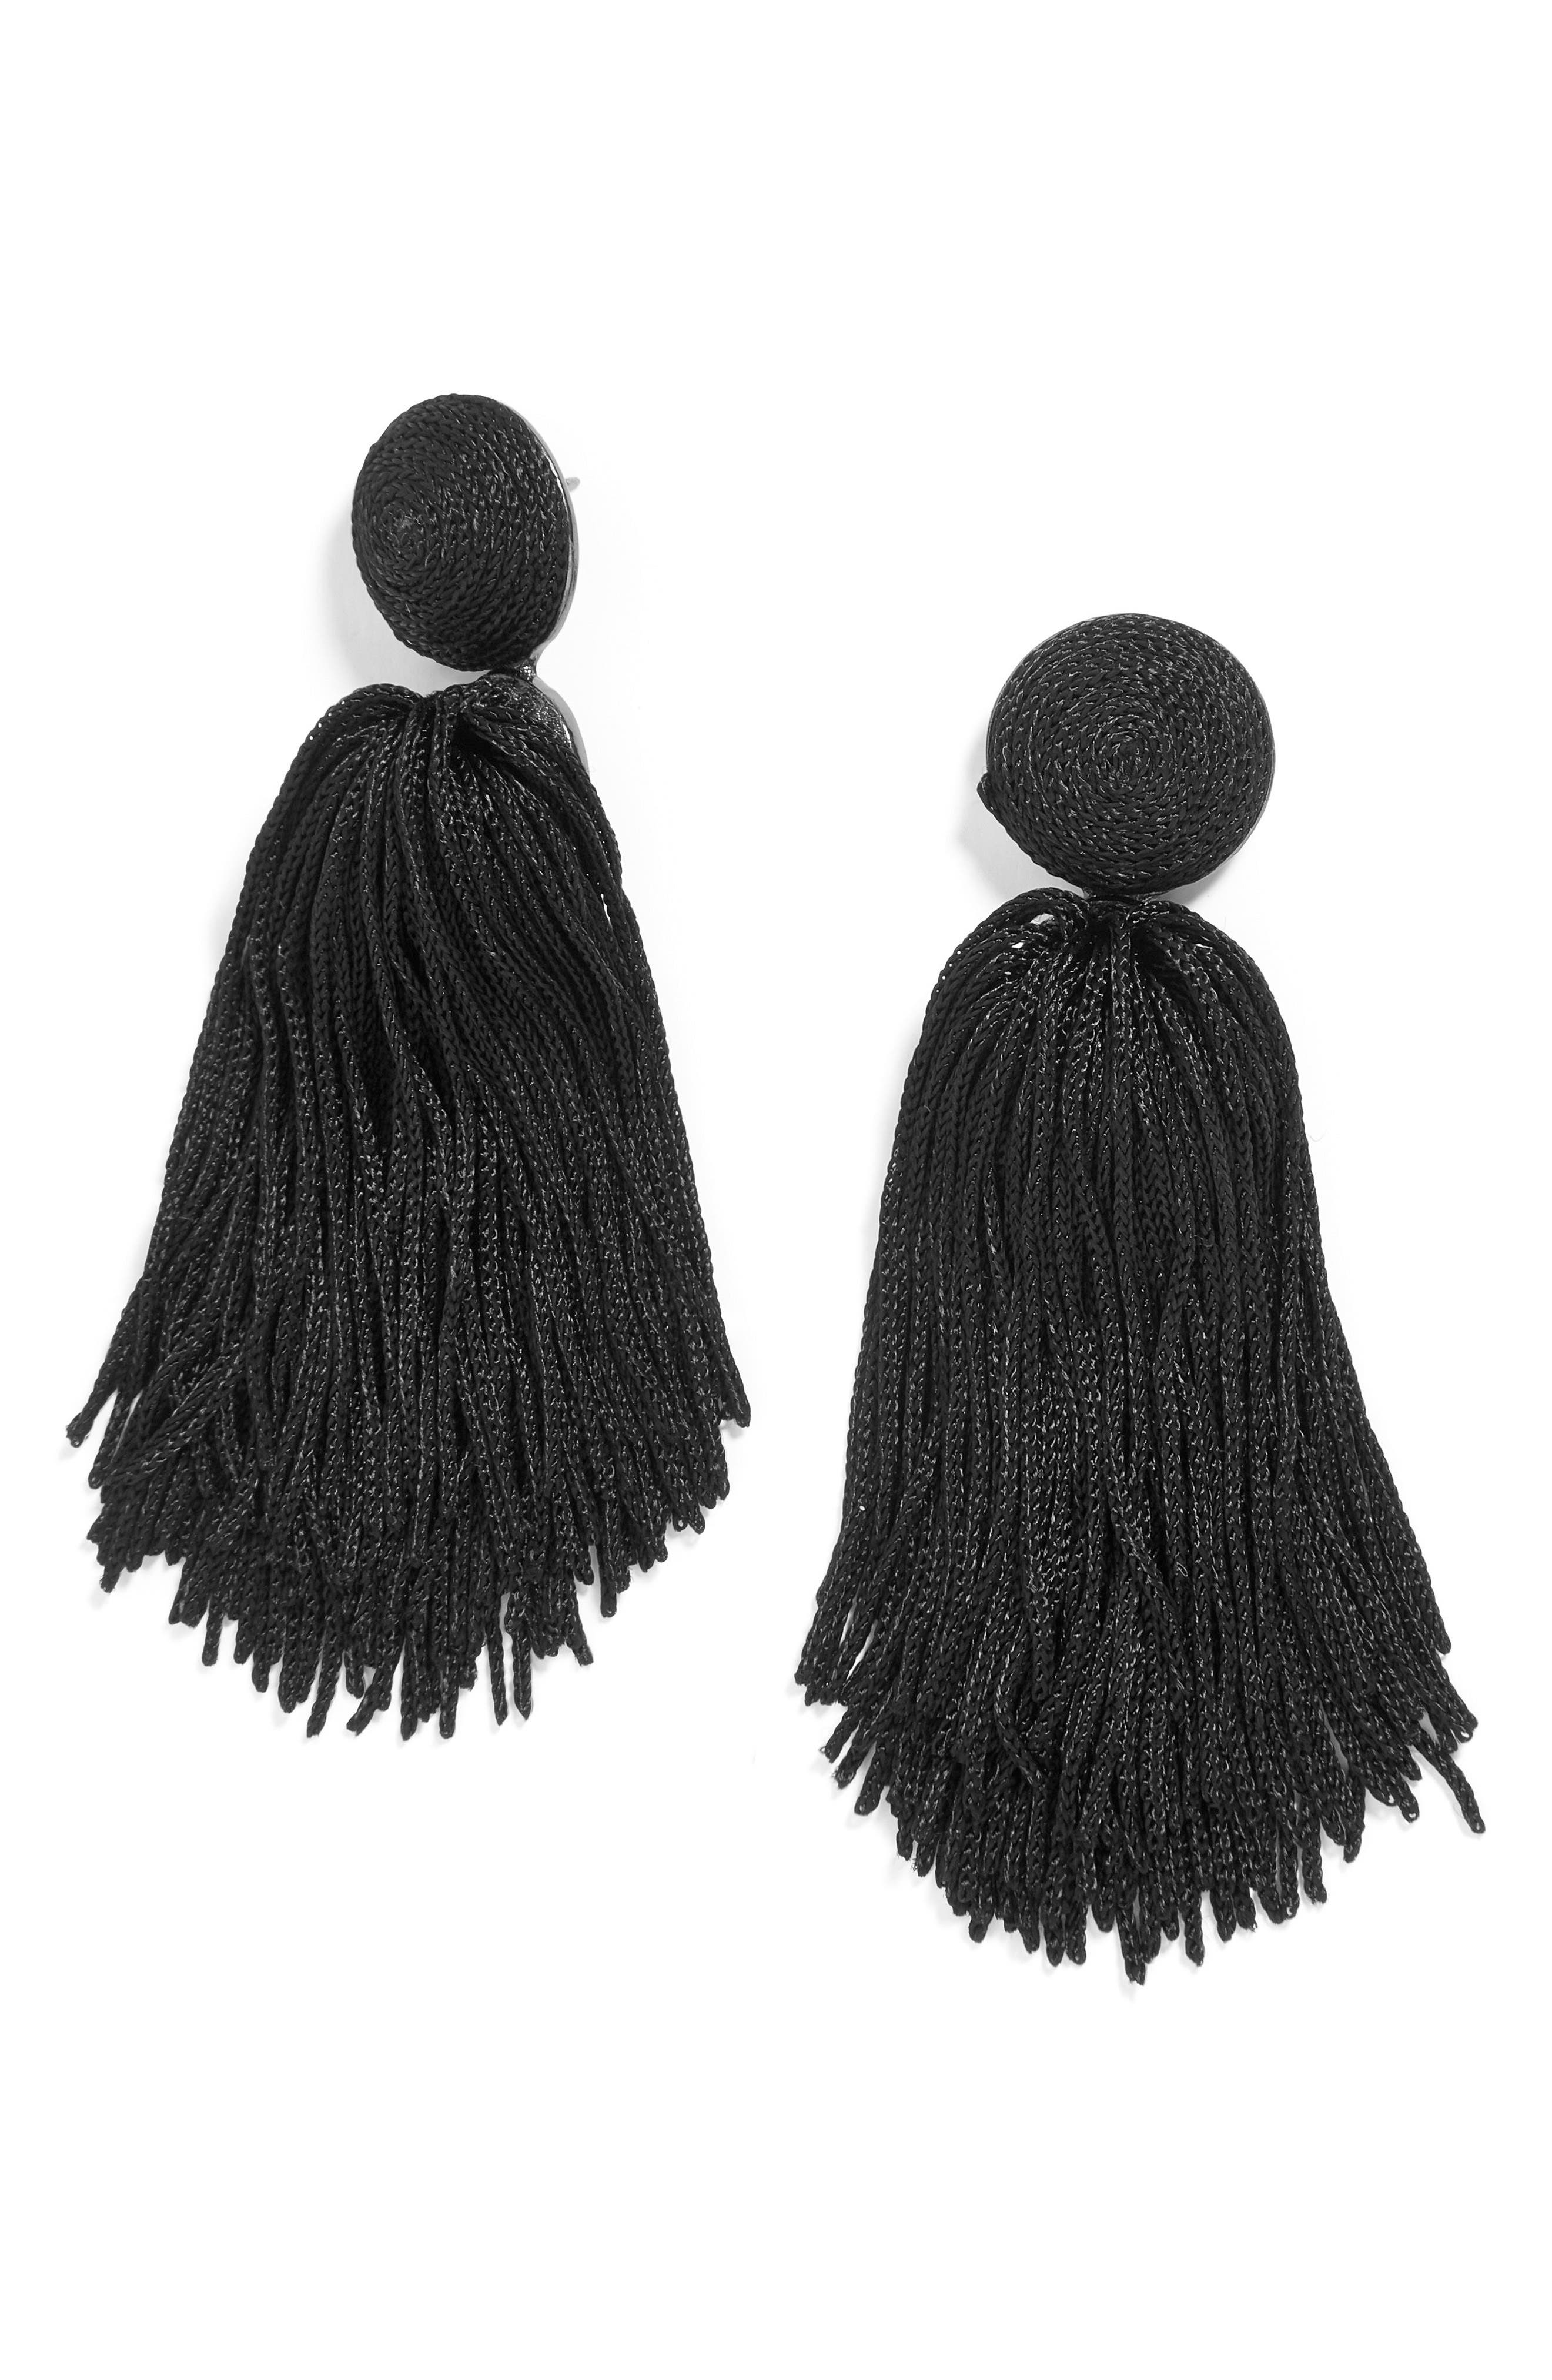 Sonatina Tassel Earrings,                             Main thumbnail 1, color,